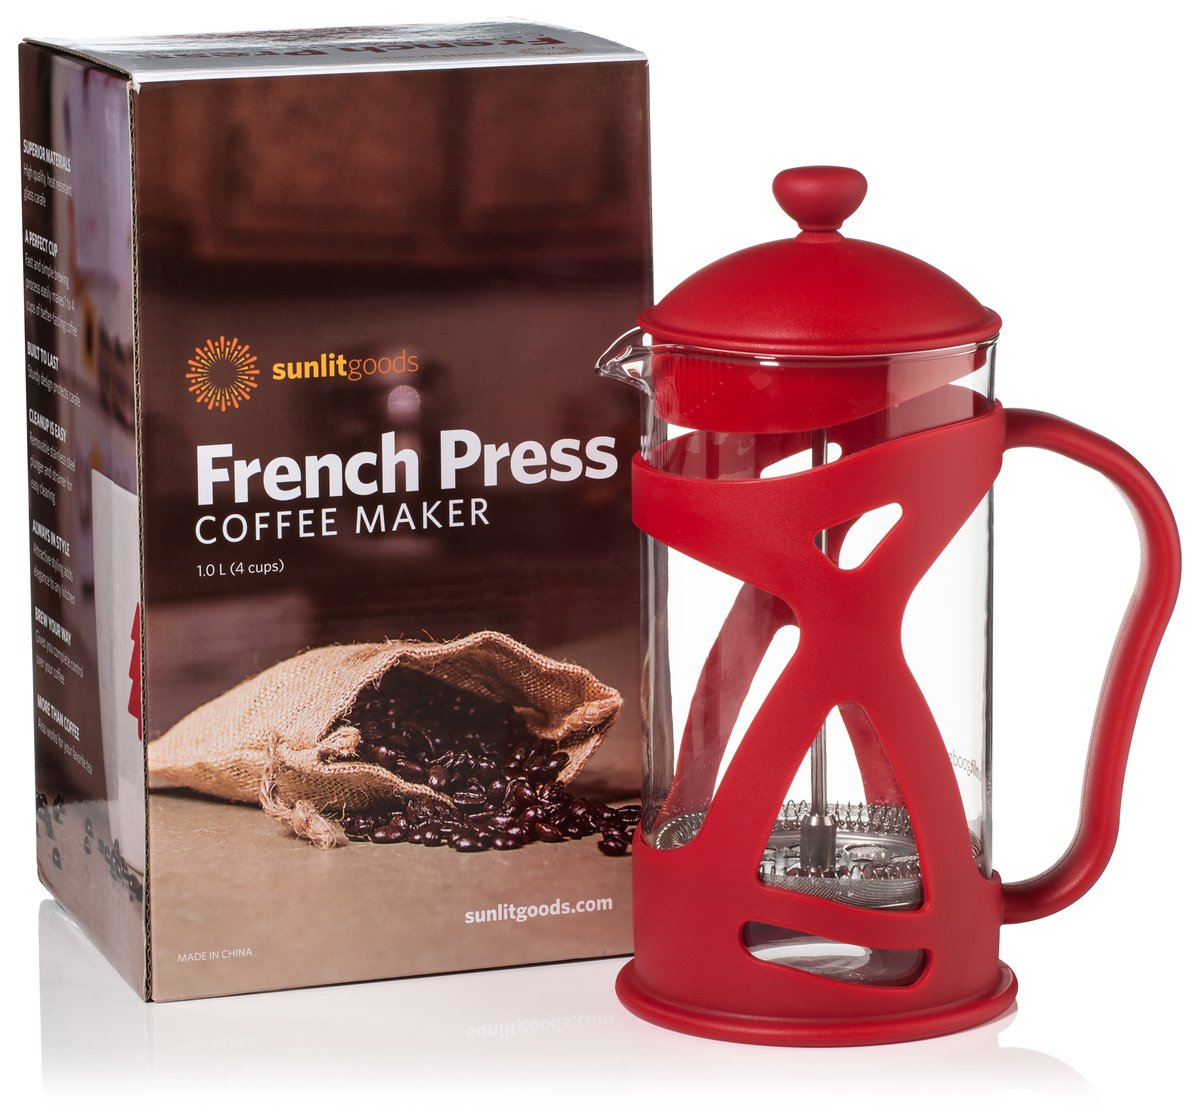 French Press Coffee & Loose Leaf Tea Maker, Red (8 Cup, 34 oz), Heat-Resistant Glass, Bonus Filter, Spoon 998East NA